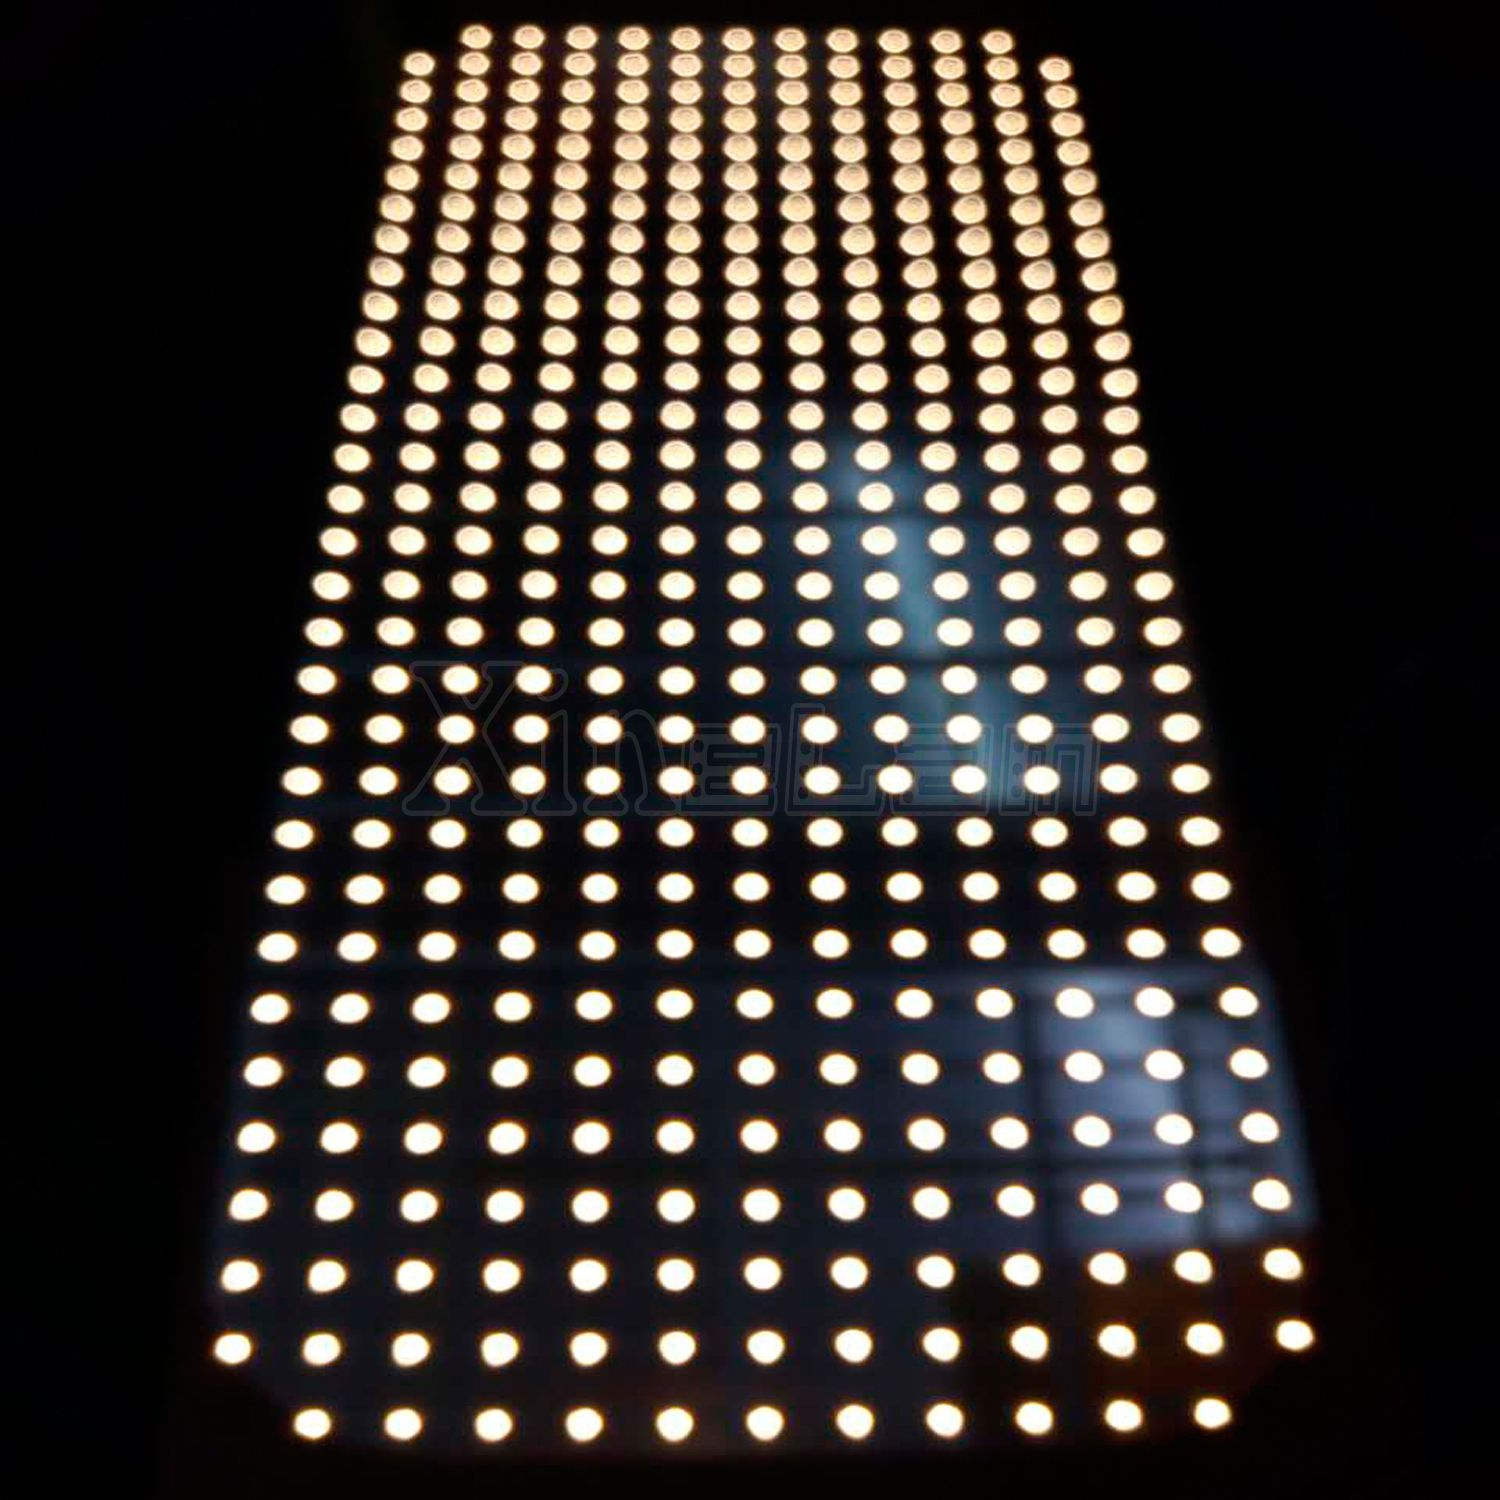 Led Matten Beleuchtung, Flexible Led Light Tiles, Light Panel Flexible Led,  Led Backlight